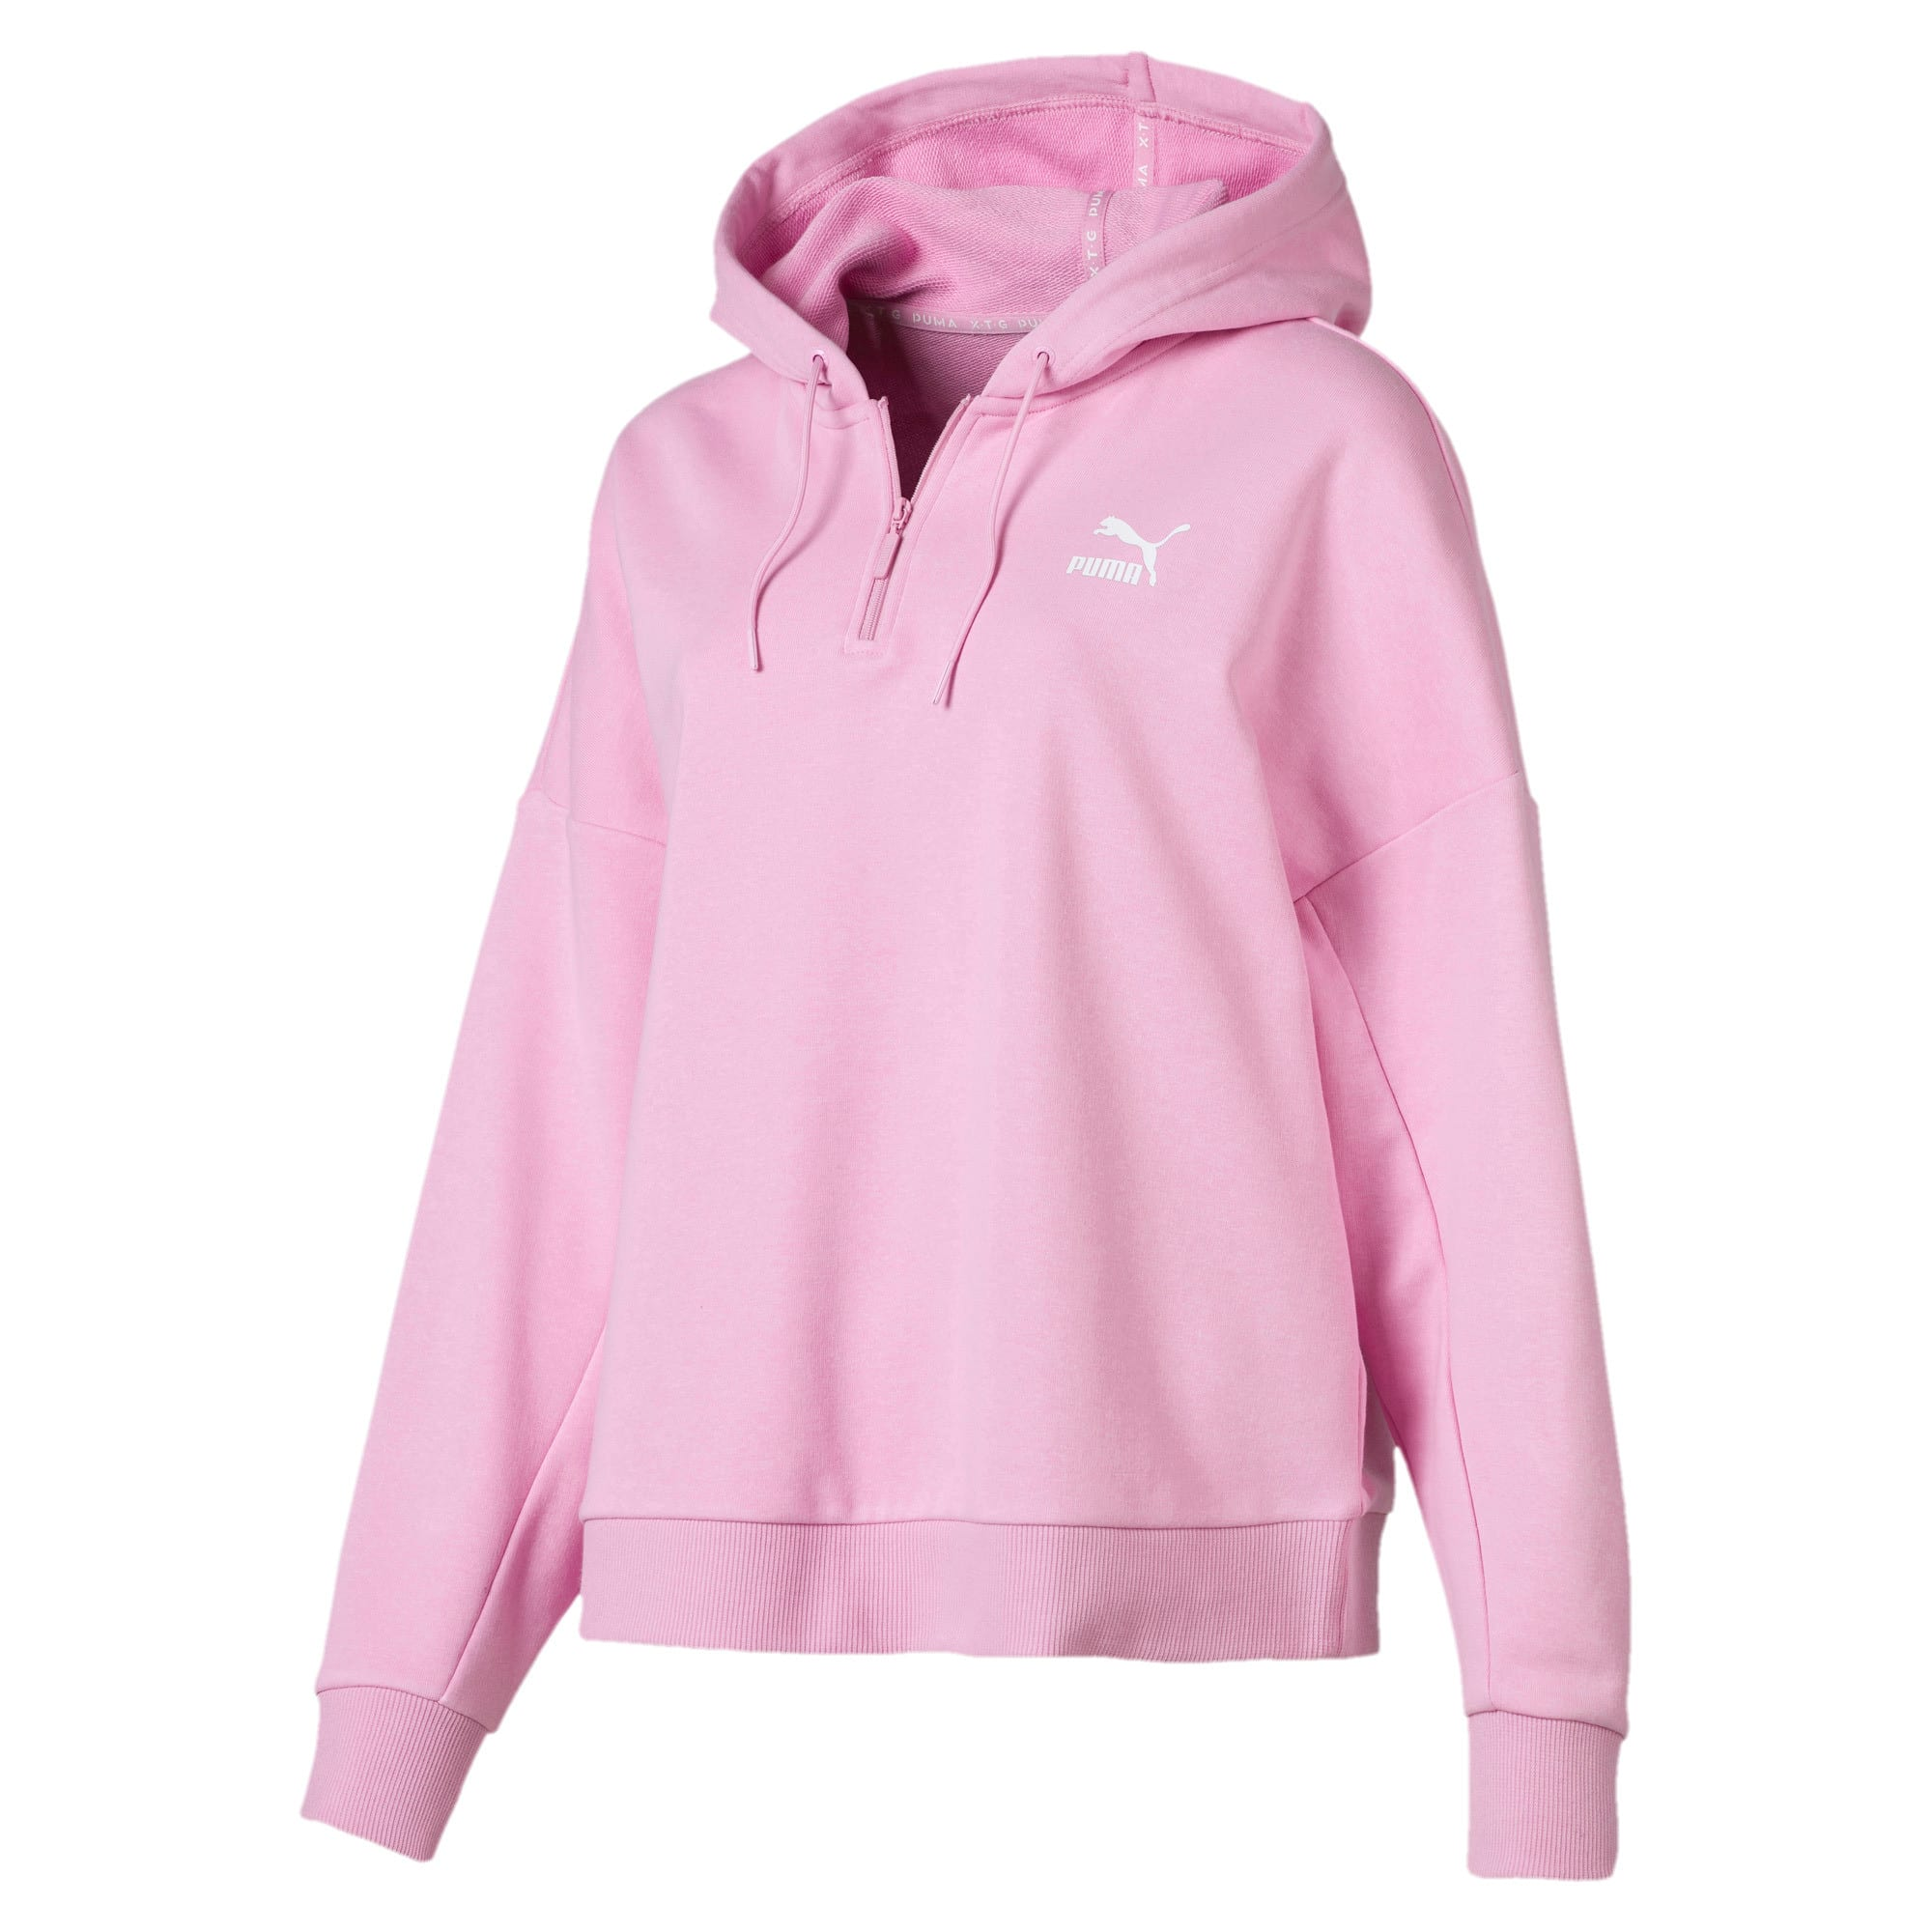 Thumbnail 2 of PUMA XTG Women's Half Zip Hoodie, Pale Pink, medium